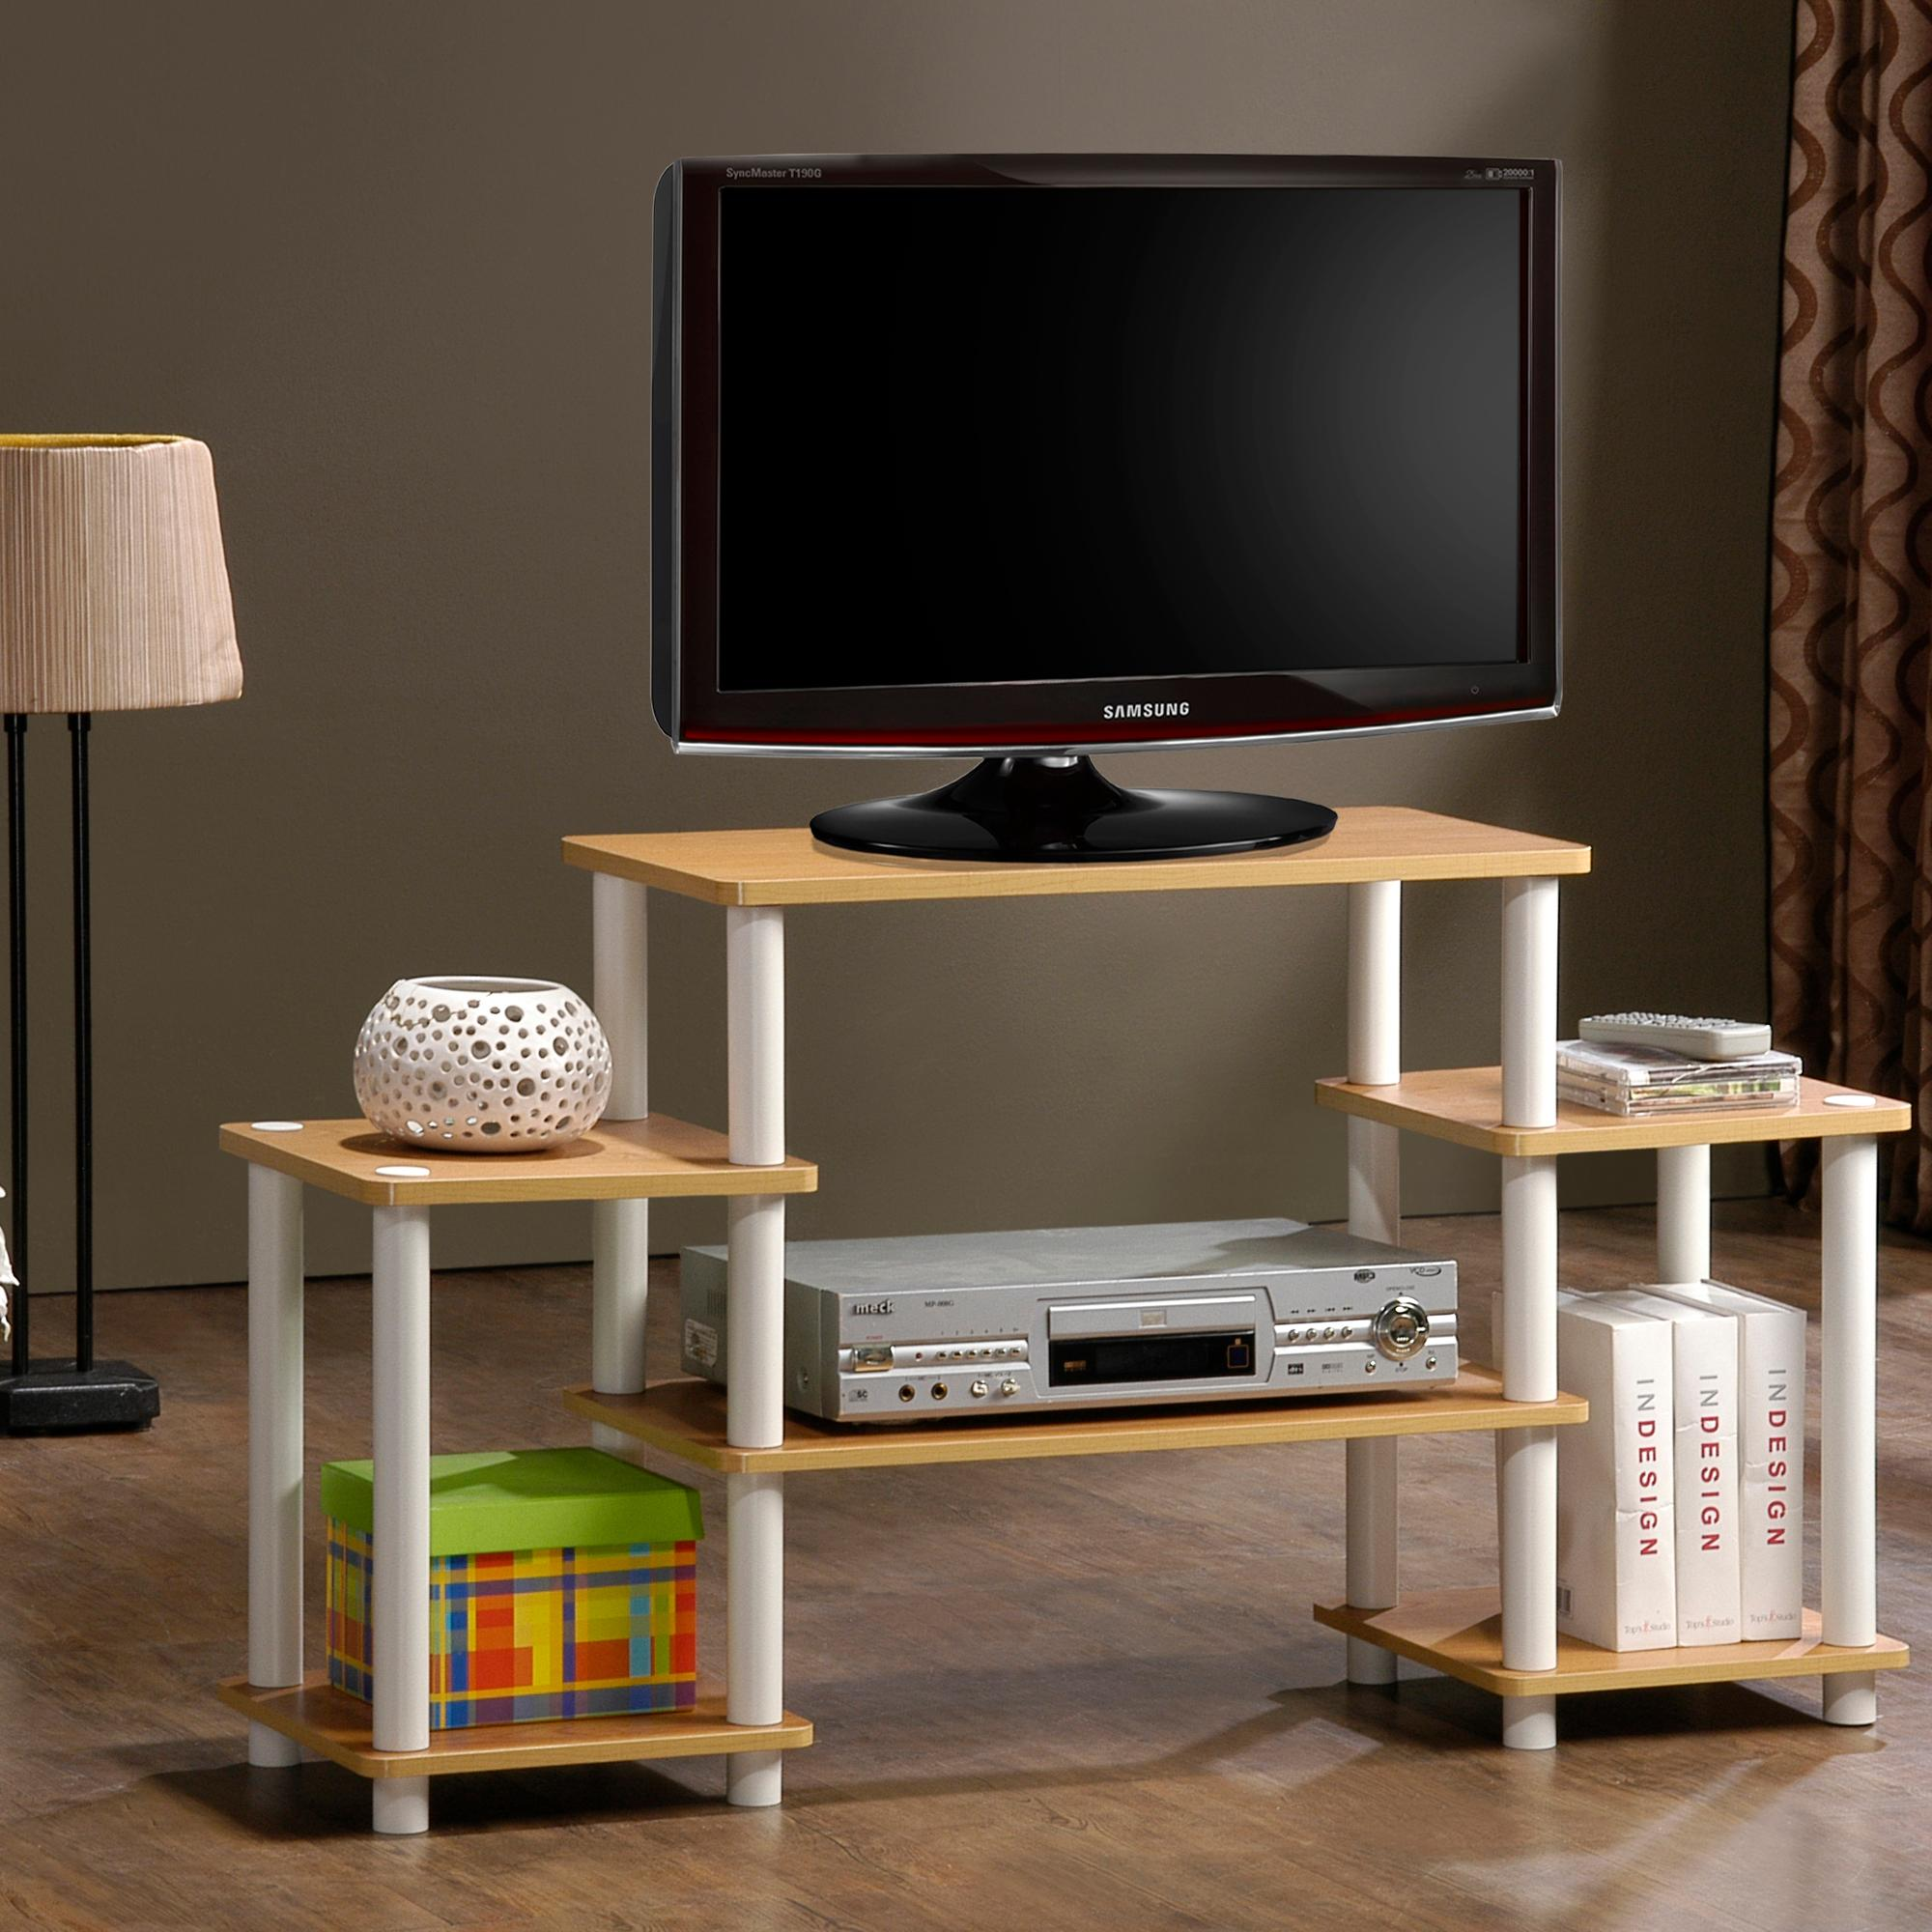 Tv Entertainment Stand Amazoncom Furinno 12258lc Bk Turn N Tube Rounded Corner Tv